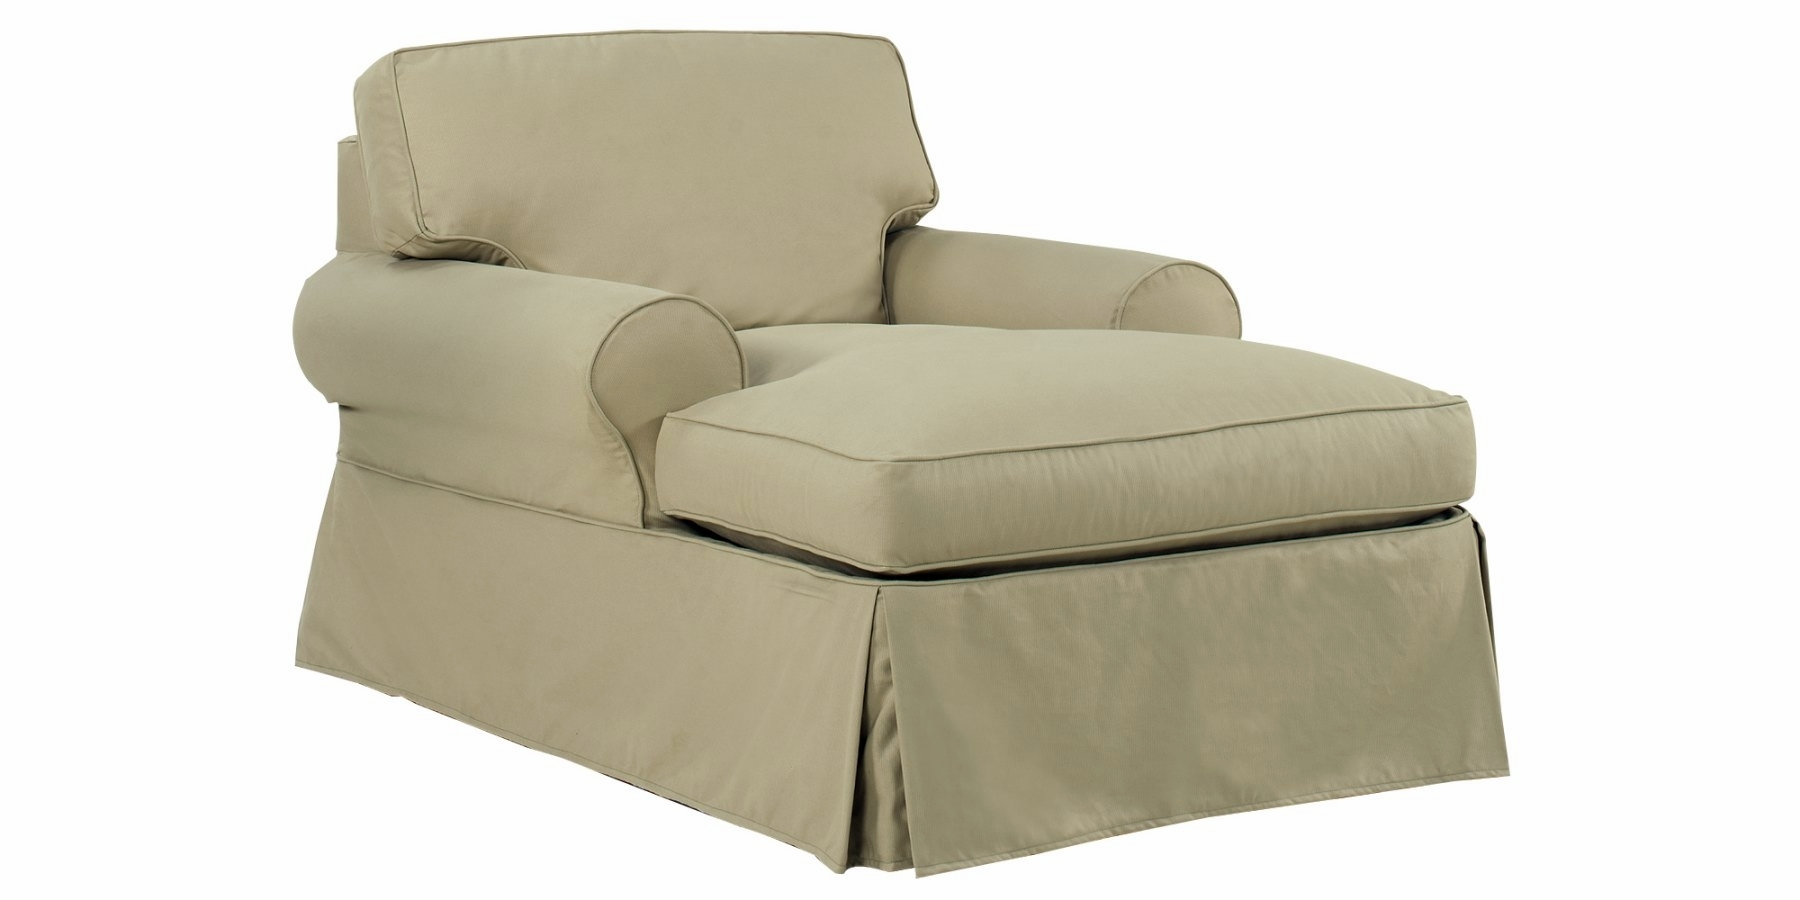 Sofa With Chaise Lounge Slipcover Hereo Sofa In Chaise Sofa Covers (View 9 of 12)